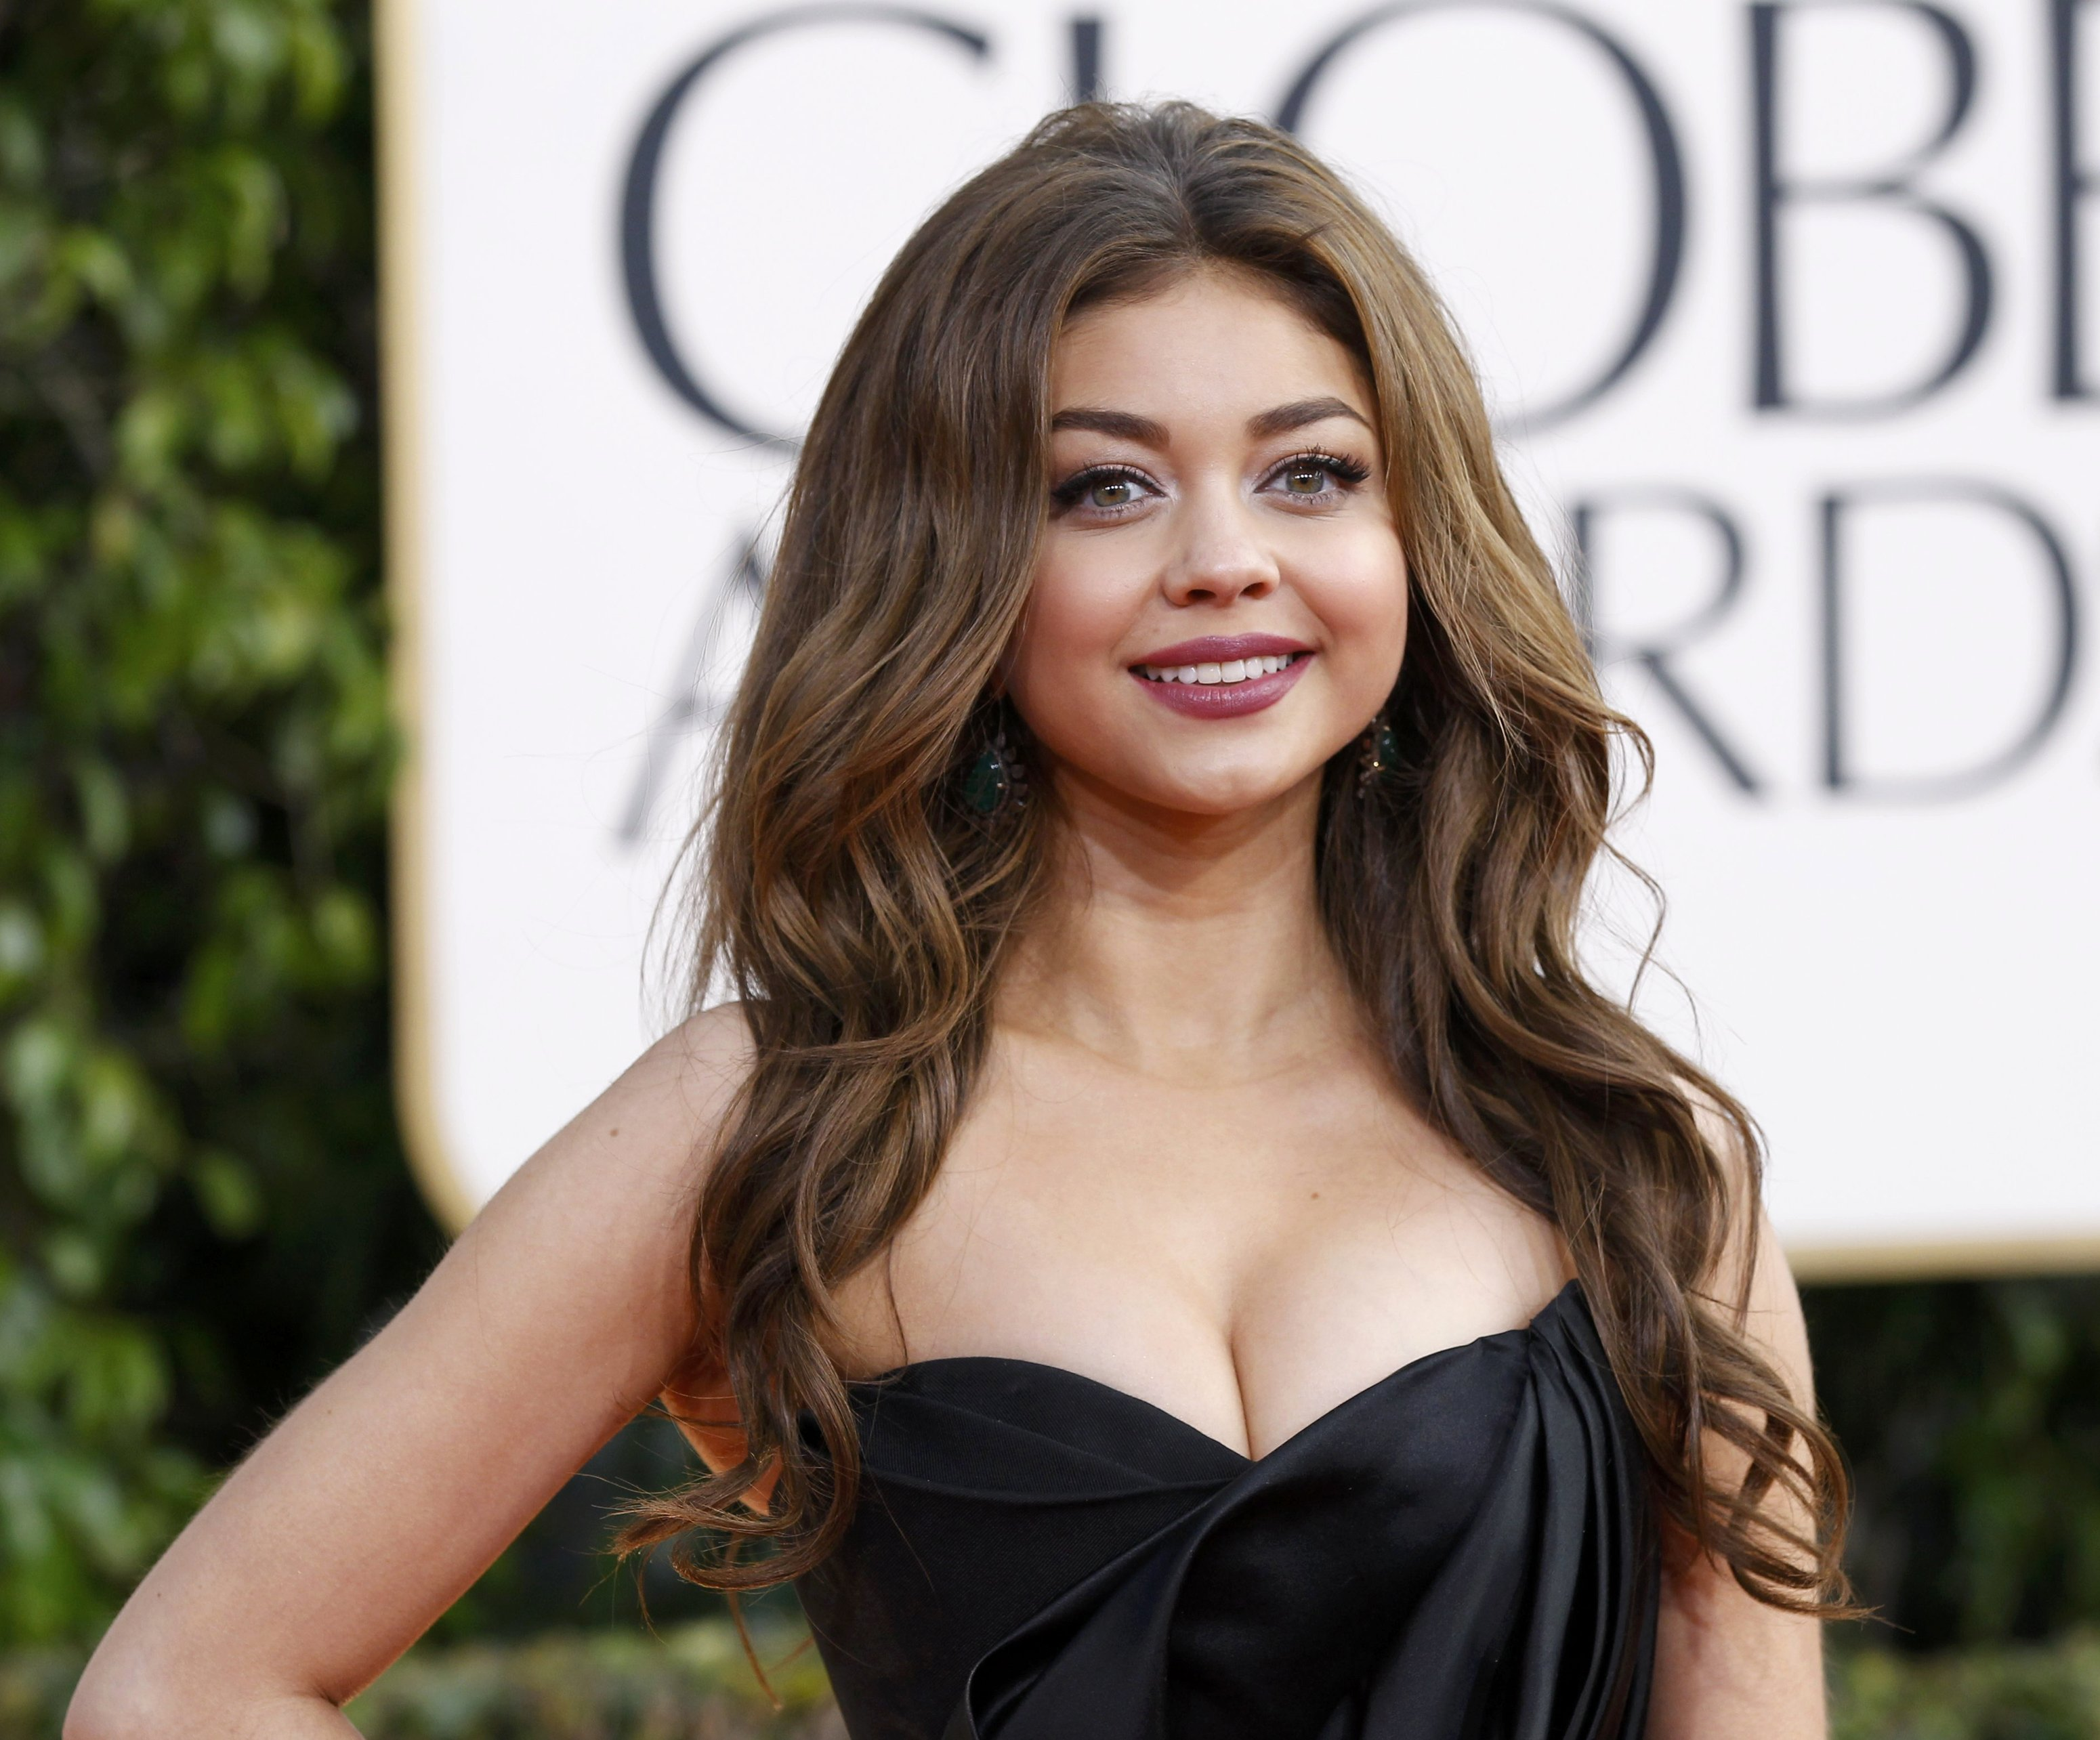 Actress Sarah Hyland arrives at the 70th annual Golden Globe Awards in Beverly Hills